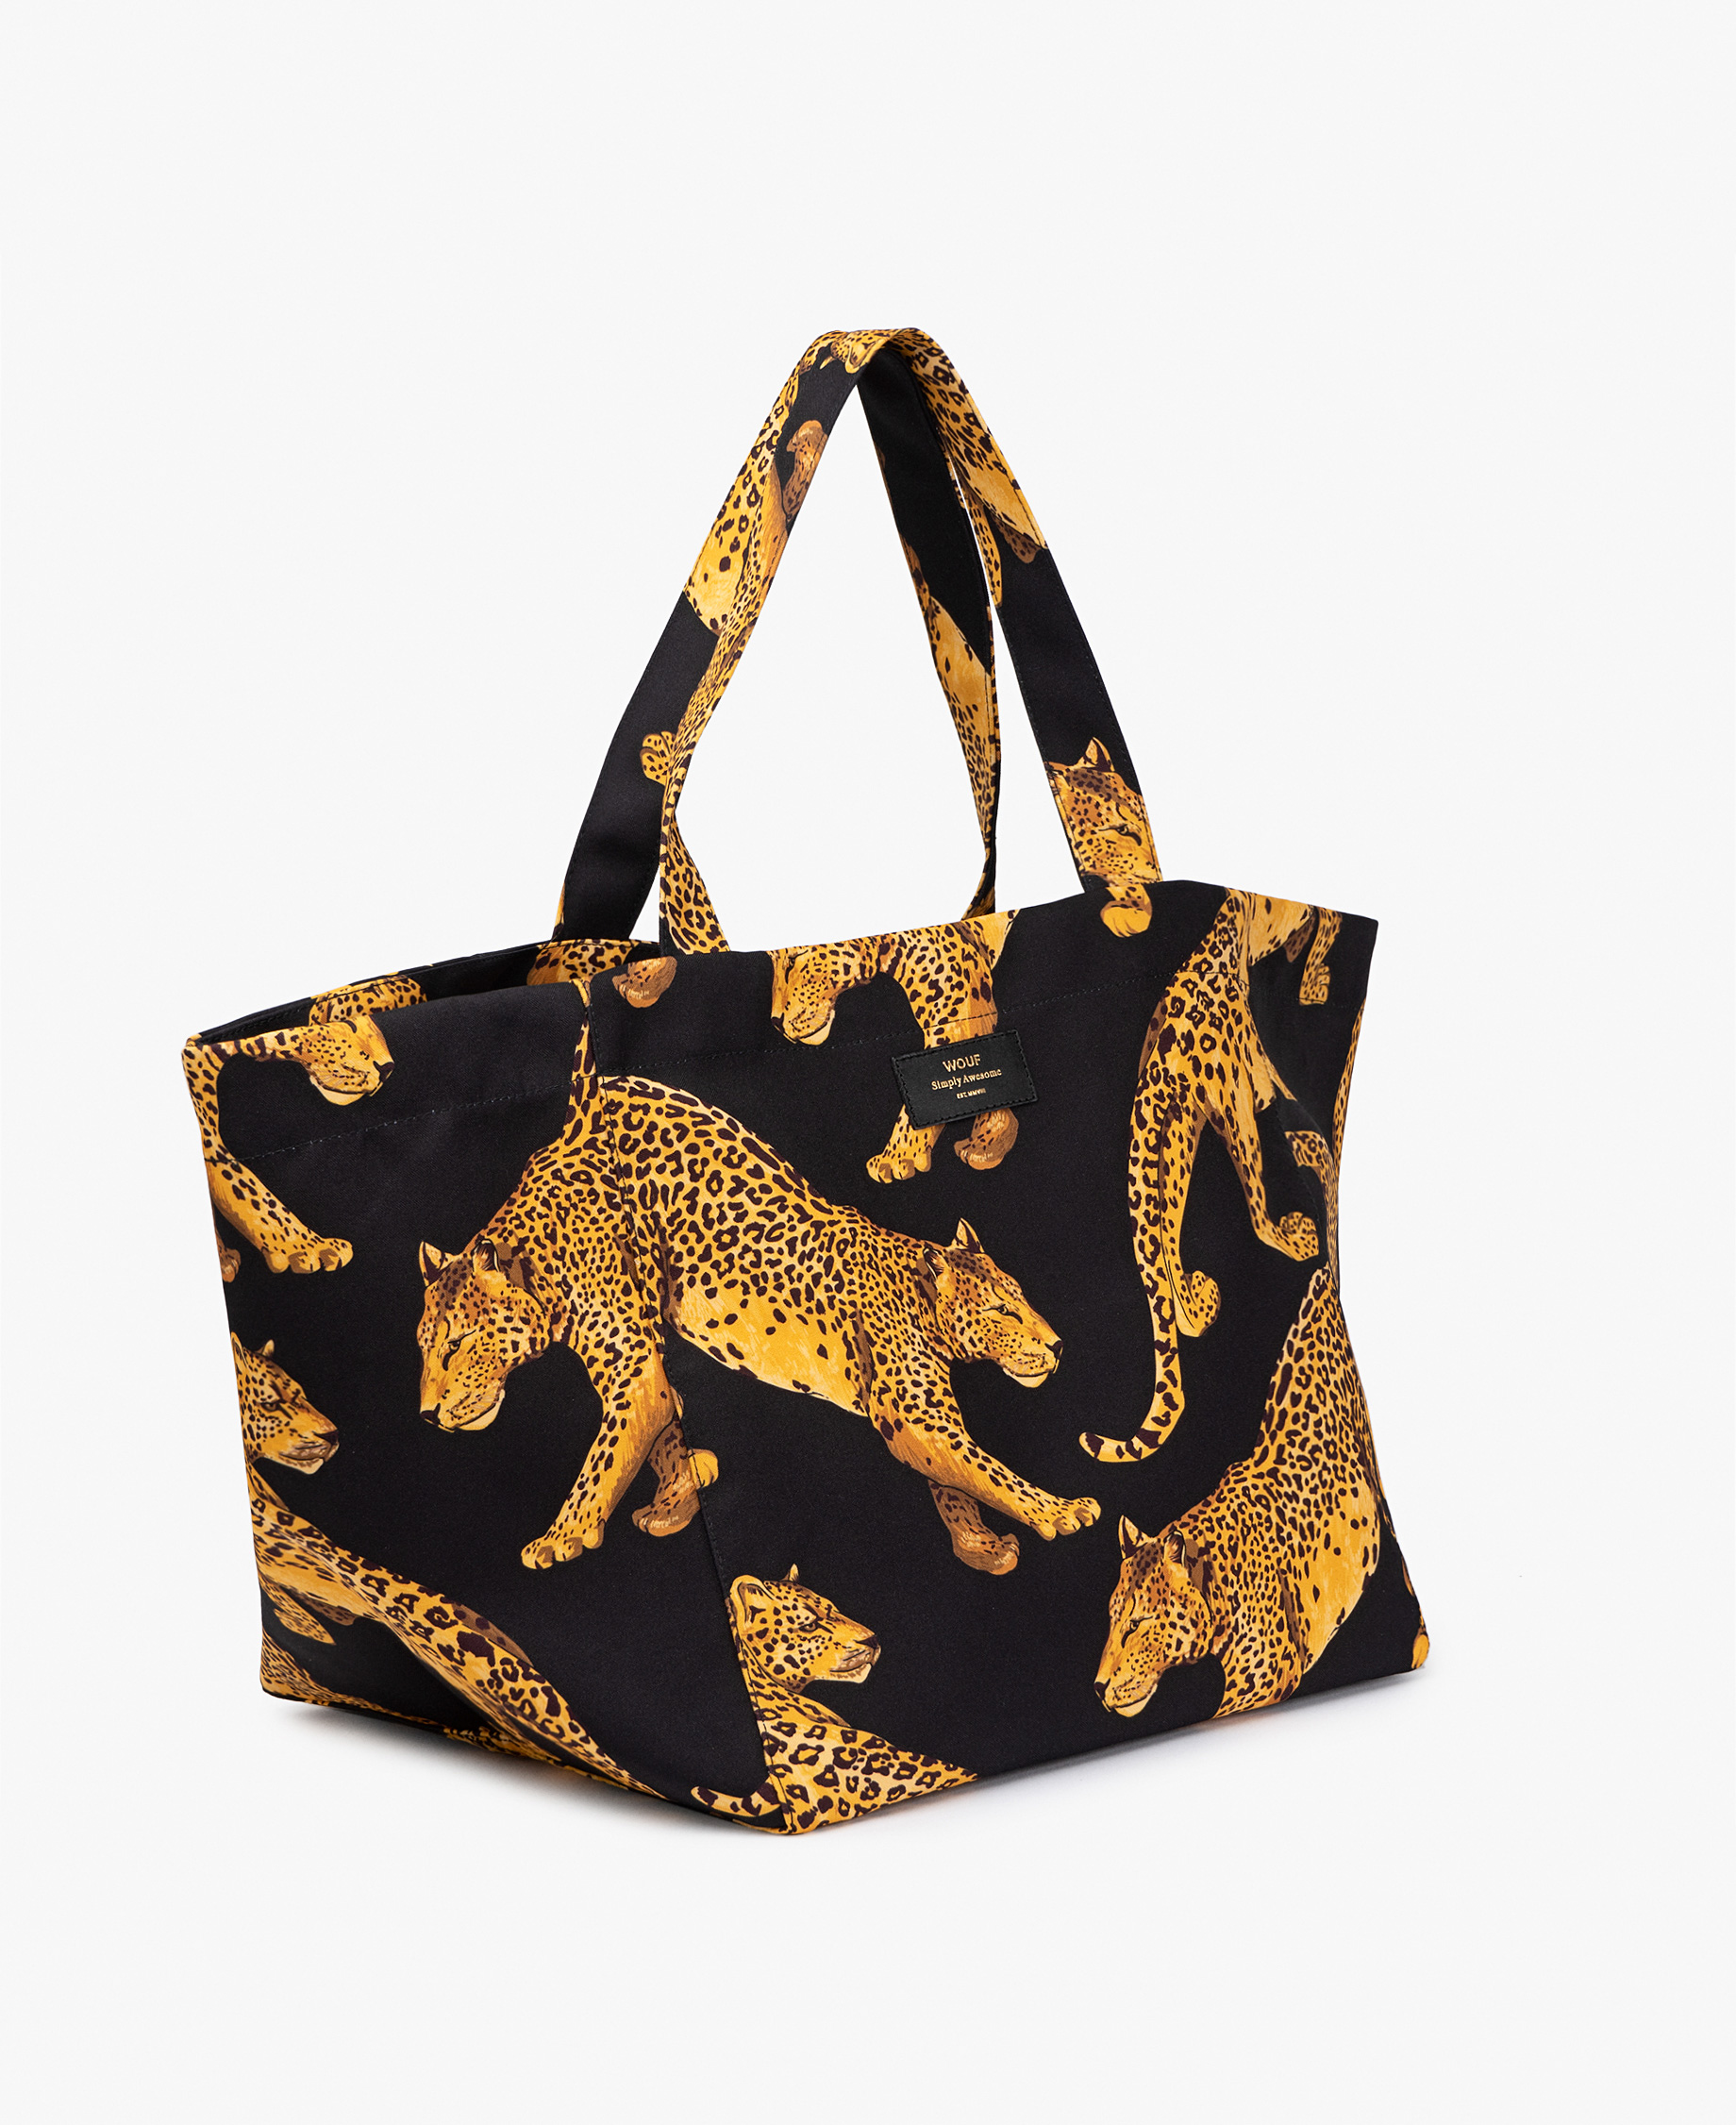 black tote bag for woman